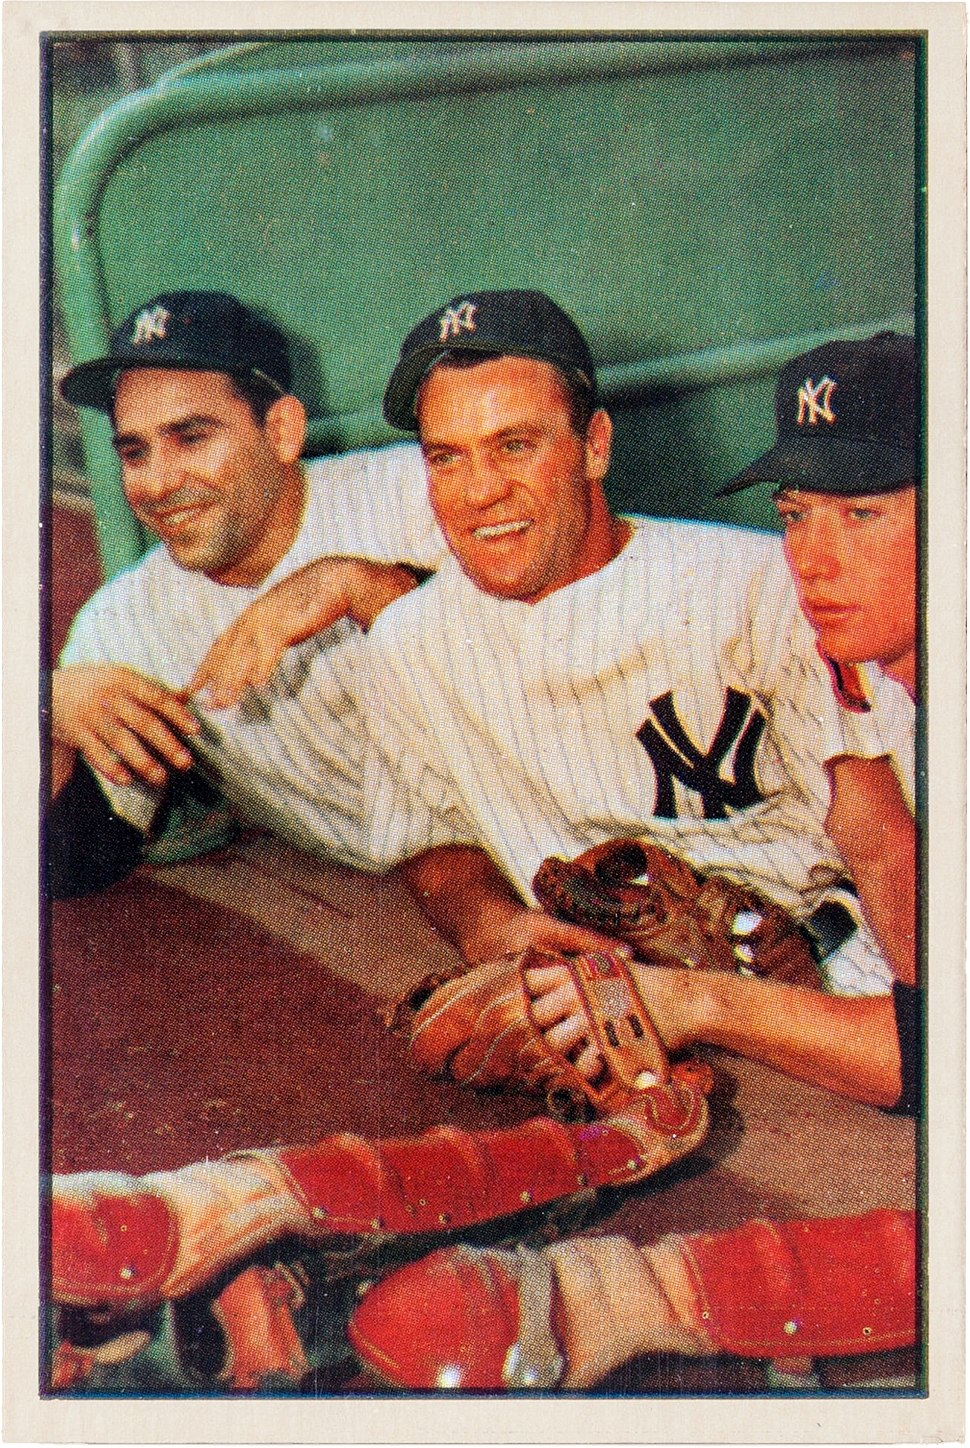 Yogi Berra, Hank Bauer, Mickey Mantle